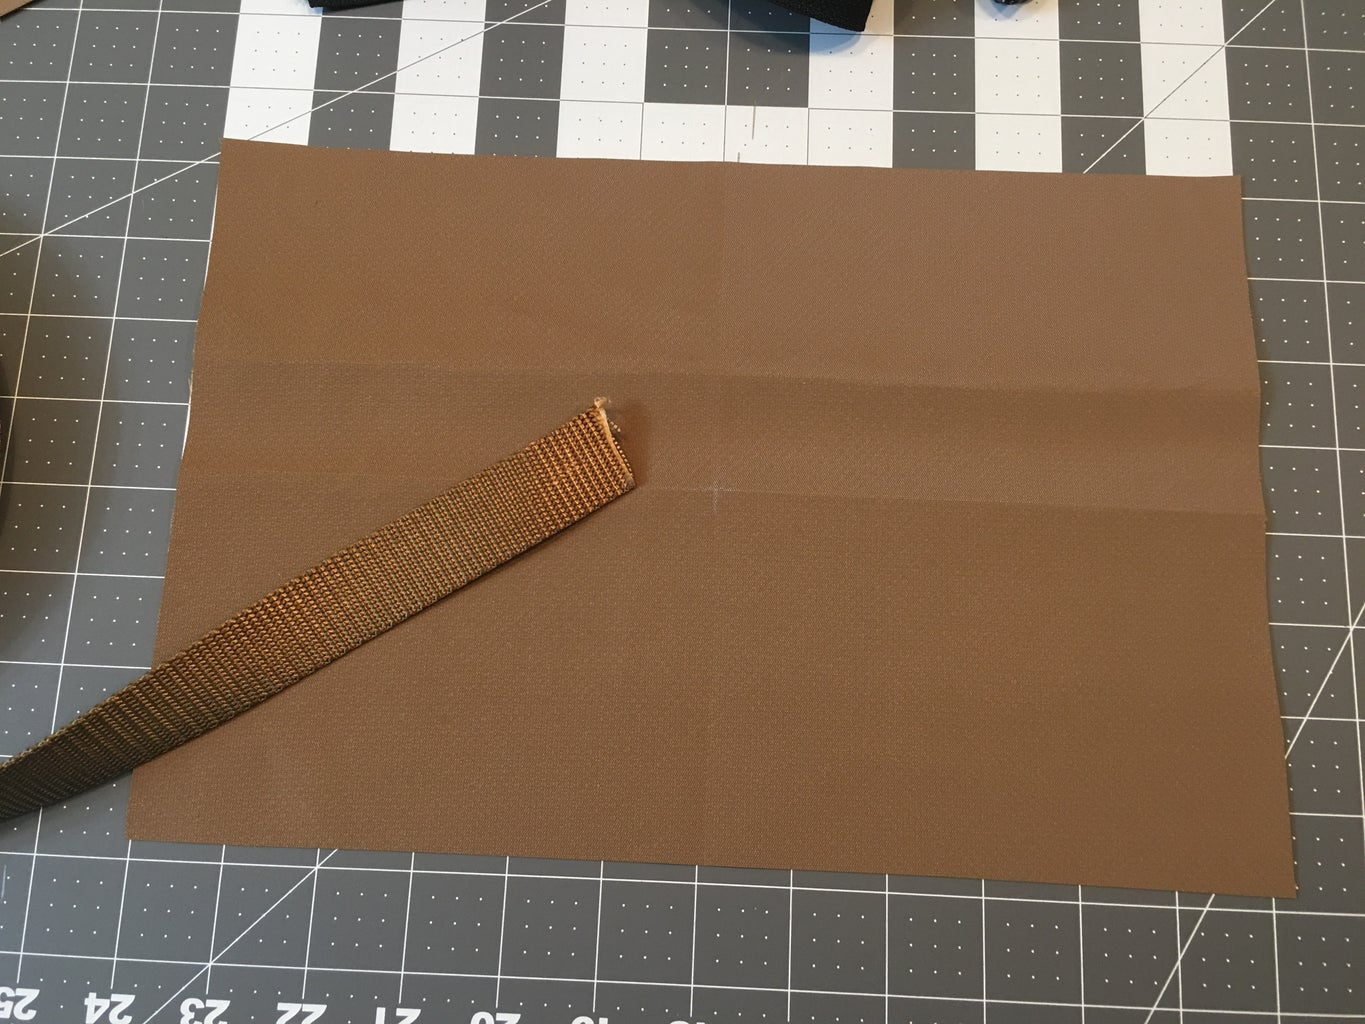 Cutting Webbing for the Top Handle: